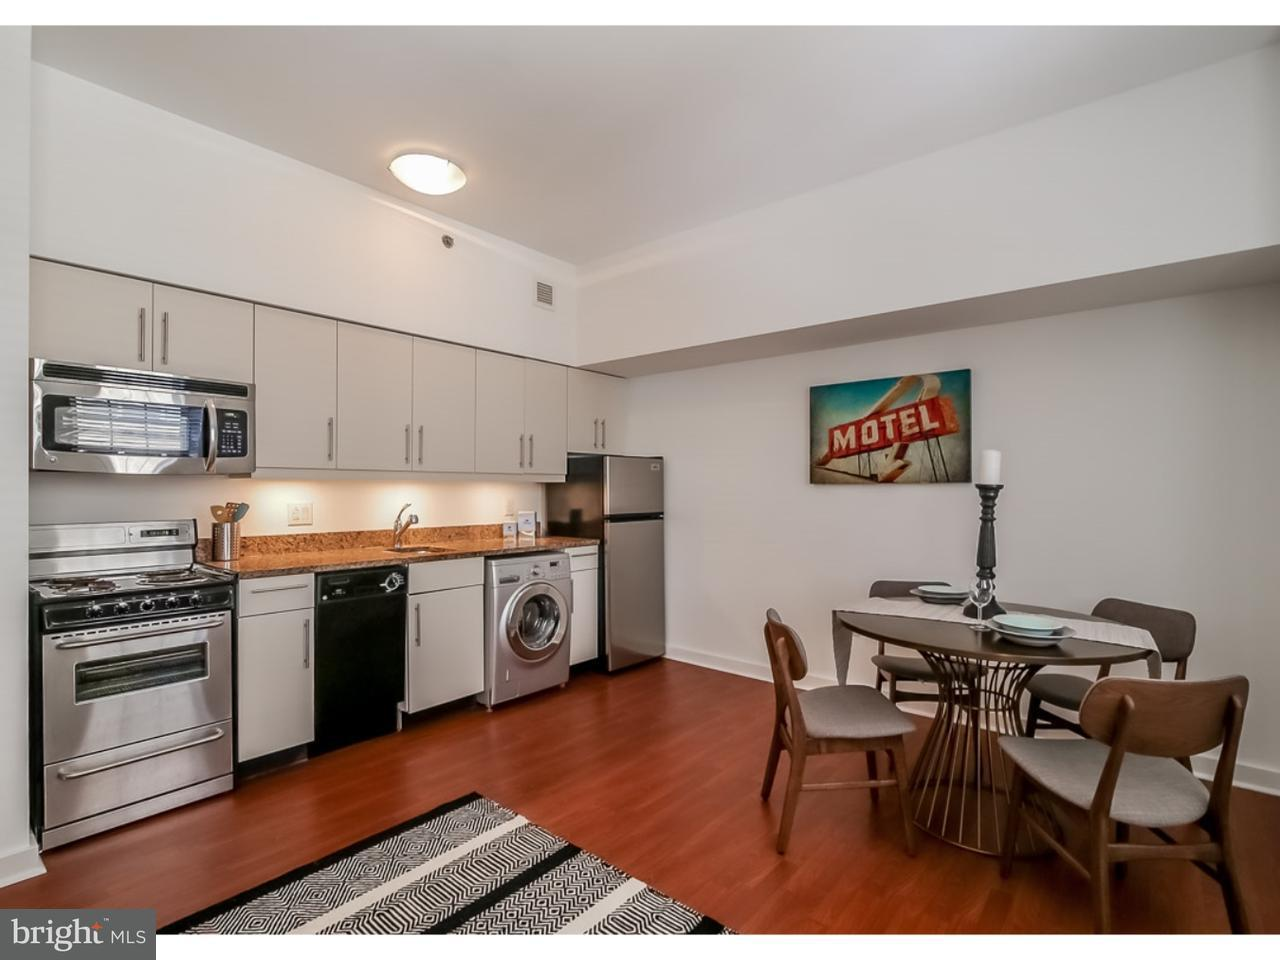 Additional photo for property listing at 219 S 18TH ST #502  Philadelphia, Pennsylvania 19103 United States